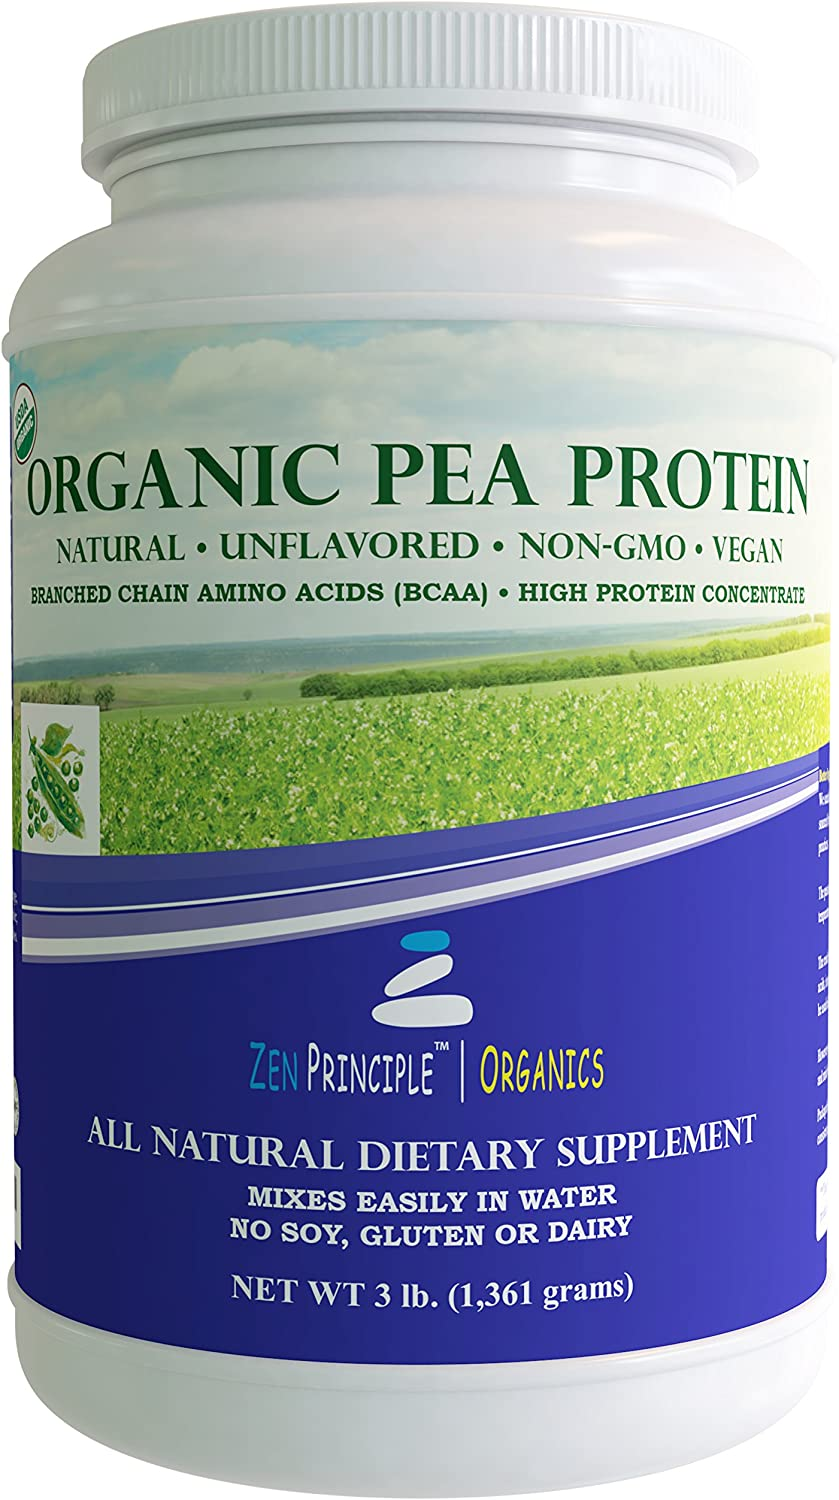 3 lb. Ultra Premium Organic Pea Protein Powder. USDA Certified ONLY from USA and Canada Grown Peas. No GMO, Soy or Gluten. Vegan. Full Spectrum Amino Acids BCAA . More Protein than Whey. 80 Protein.